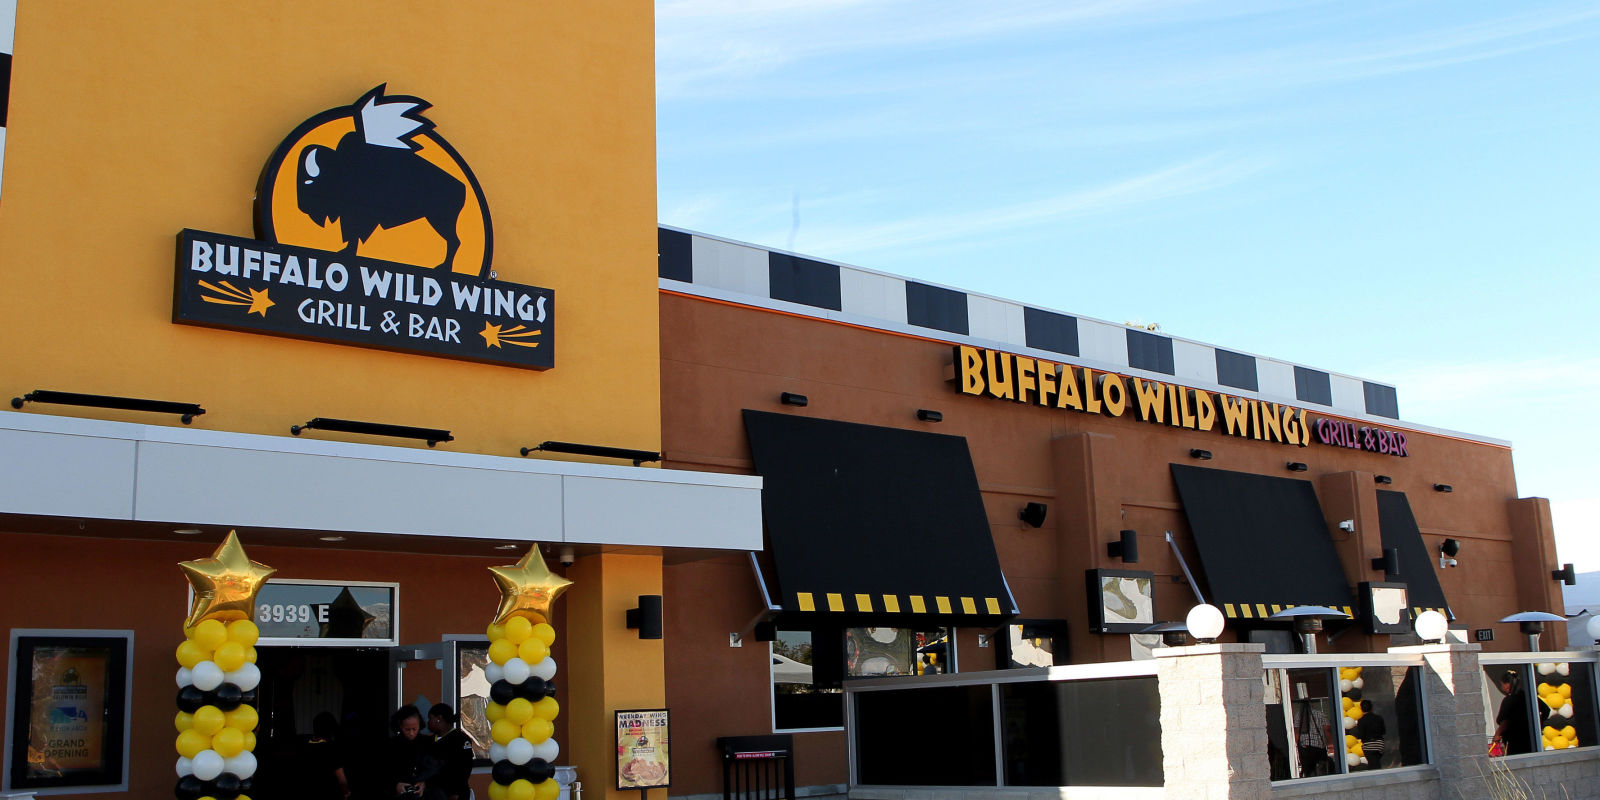 In , the chain, now calling its locations, Buffalo Wild Wings Grill & Bar, was in 19 states and locations (at year end) with one finally in the city of its signature menu item, Buffalo, New York. System-wide revenue was $ million in with same-stores averaged growth of 8 percent per year. The company began pushing takeout tgzll.mld: ; 36 years ago in Columbus, Ohio, U.S. as Buffalo Wild Wings & Weck.